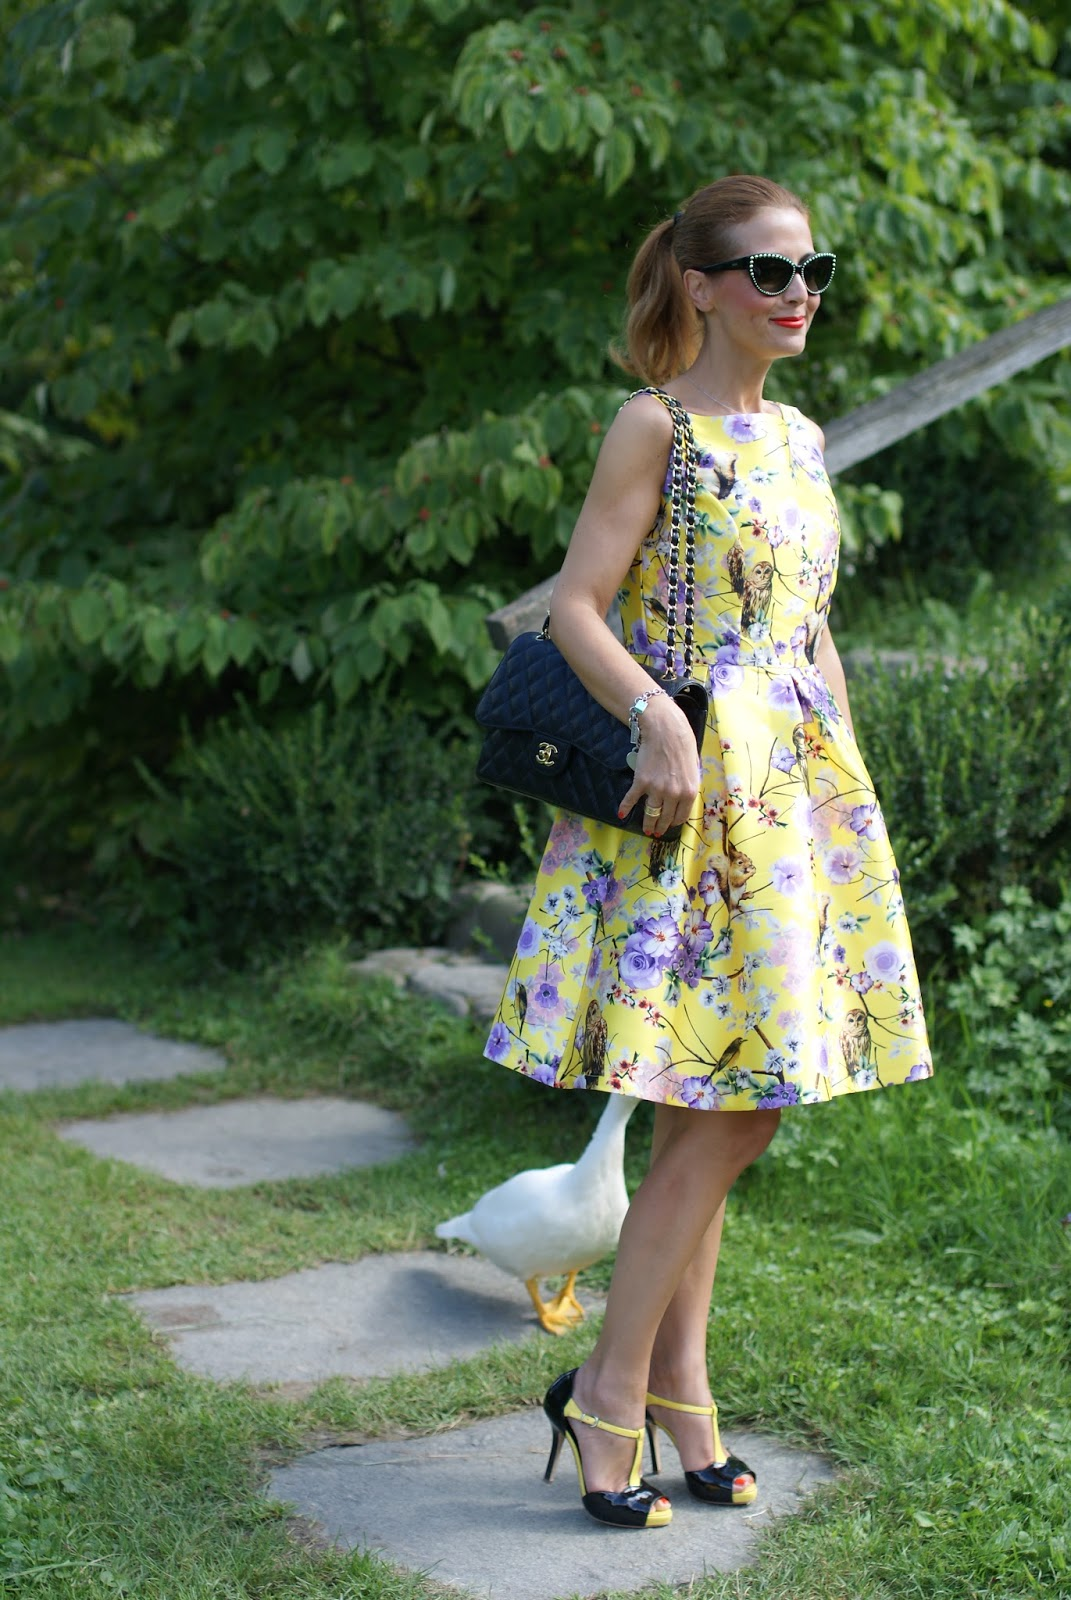 Zaful floral and owls print dress with Chanel classic flap bag and fashionable ducks on Fashion and Cookies fashion blog